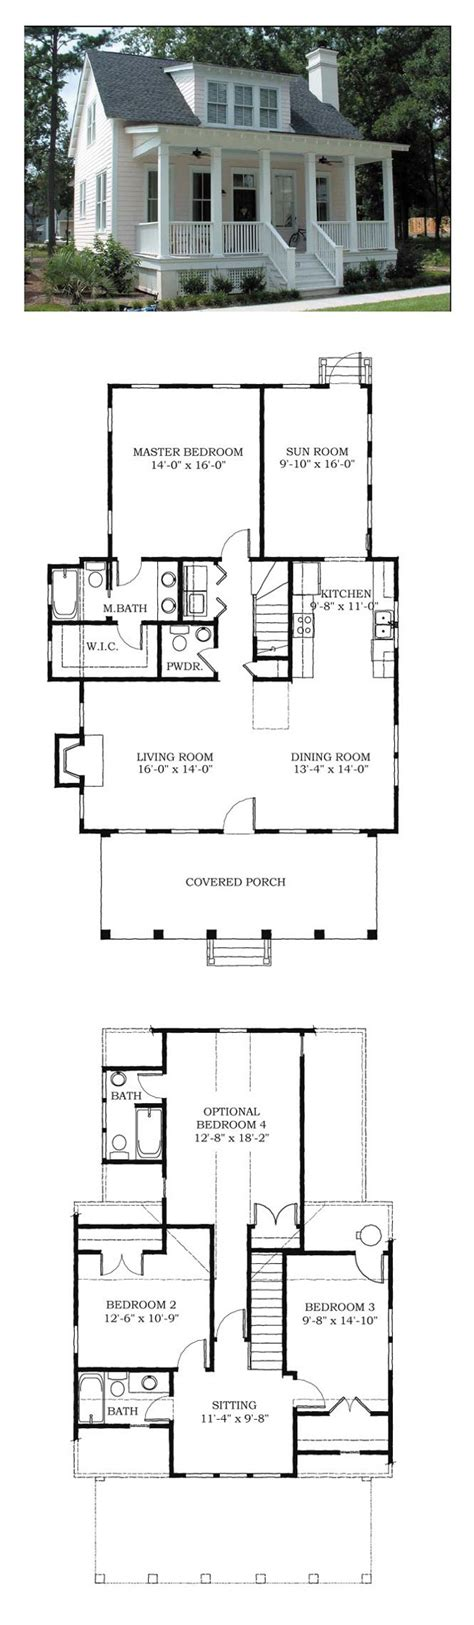 small floor plans cottages 101 interior design ideas home bunch interior design ideas